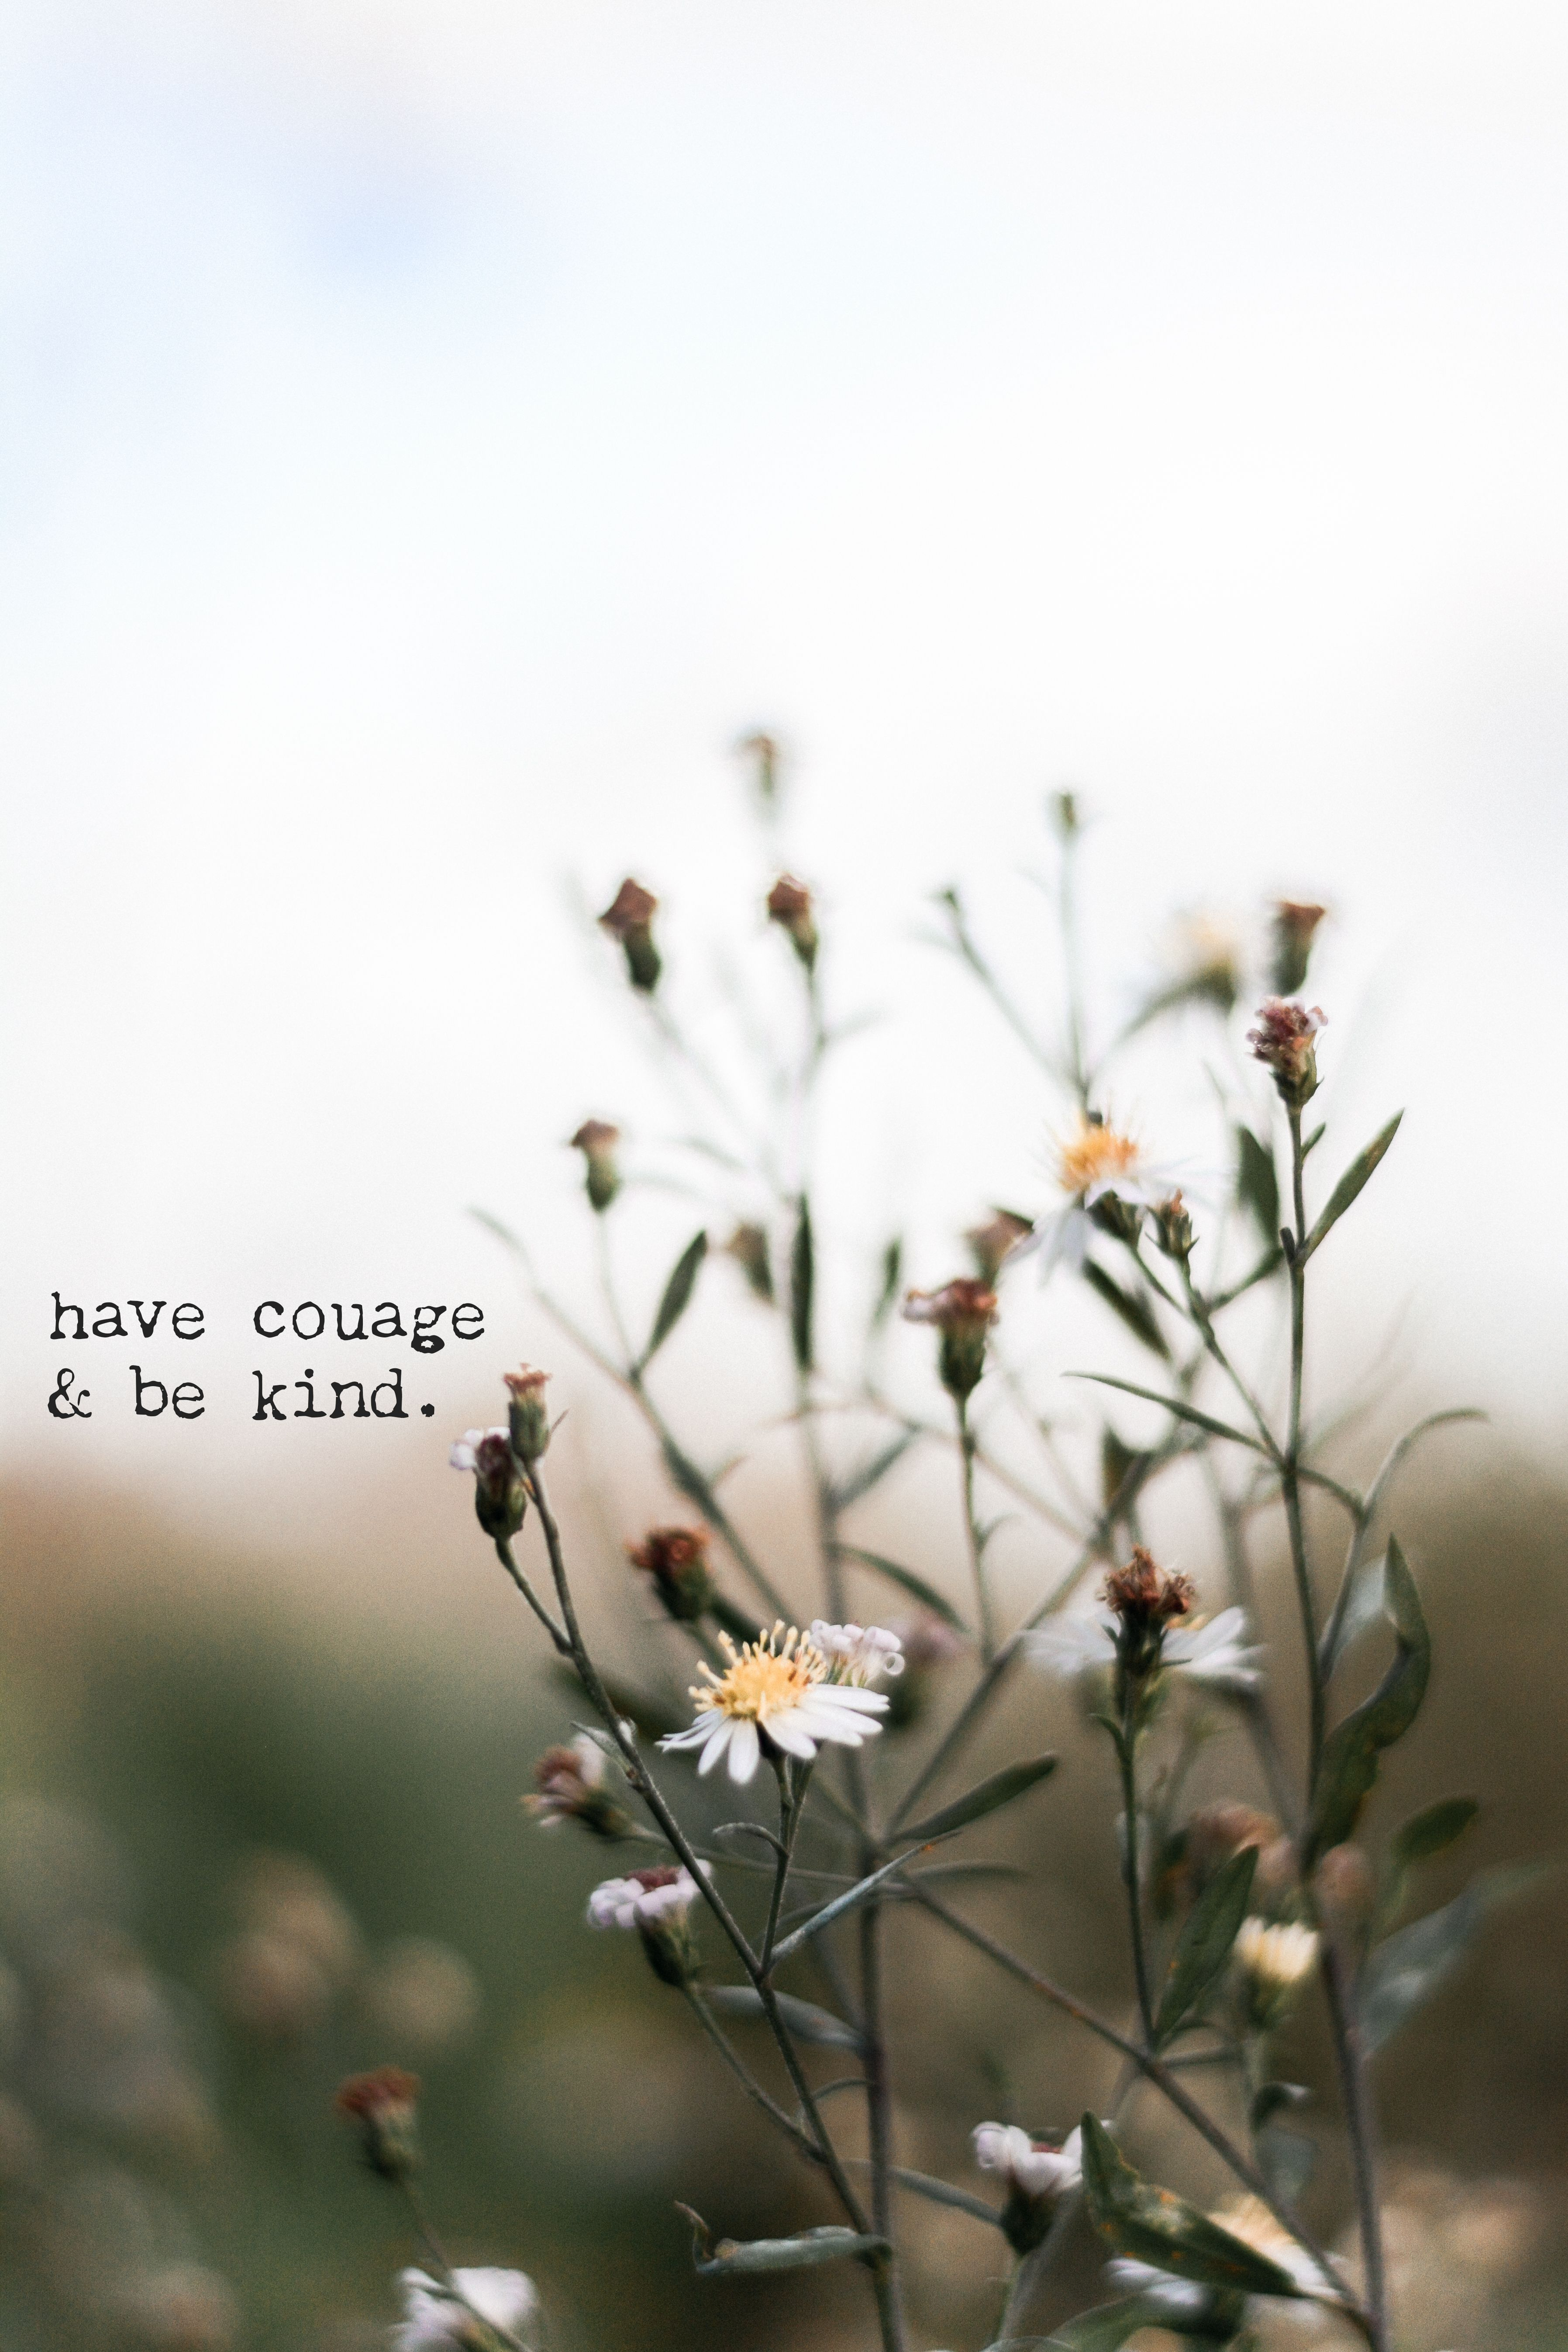 have courage & be kind quotes motivational words